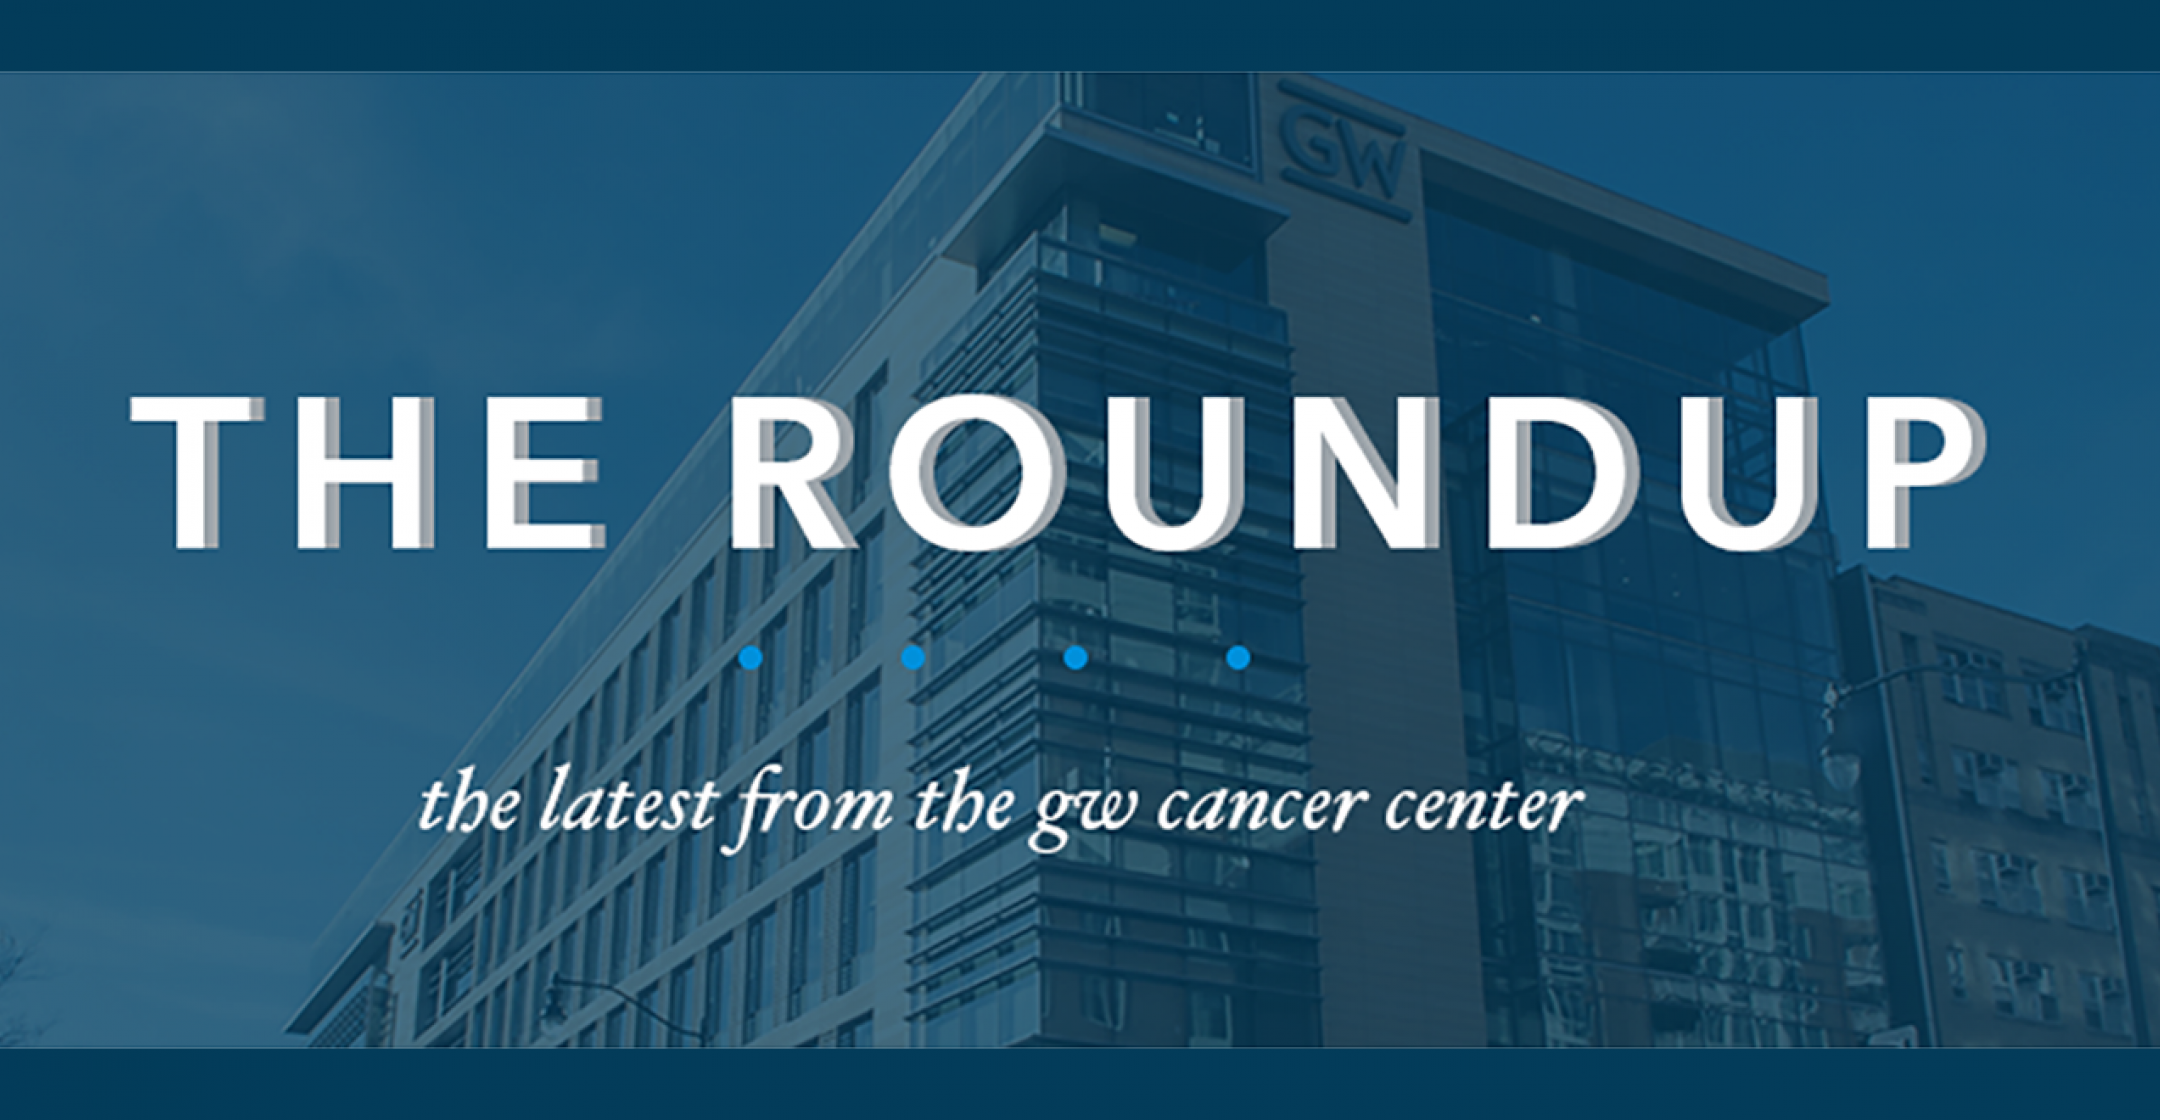 The Roundup: The Latest from the GW Cancer Center